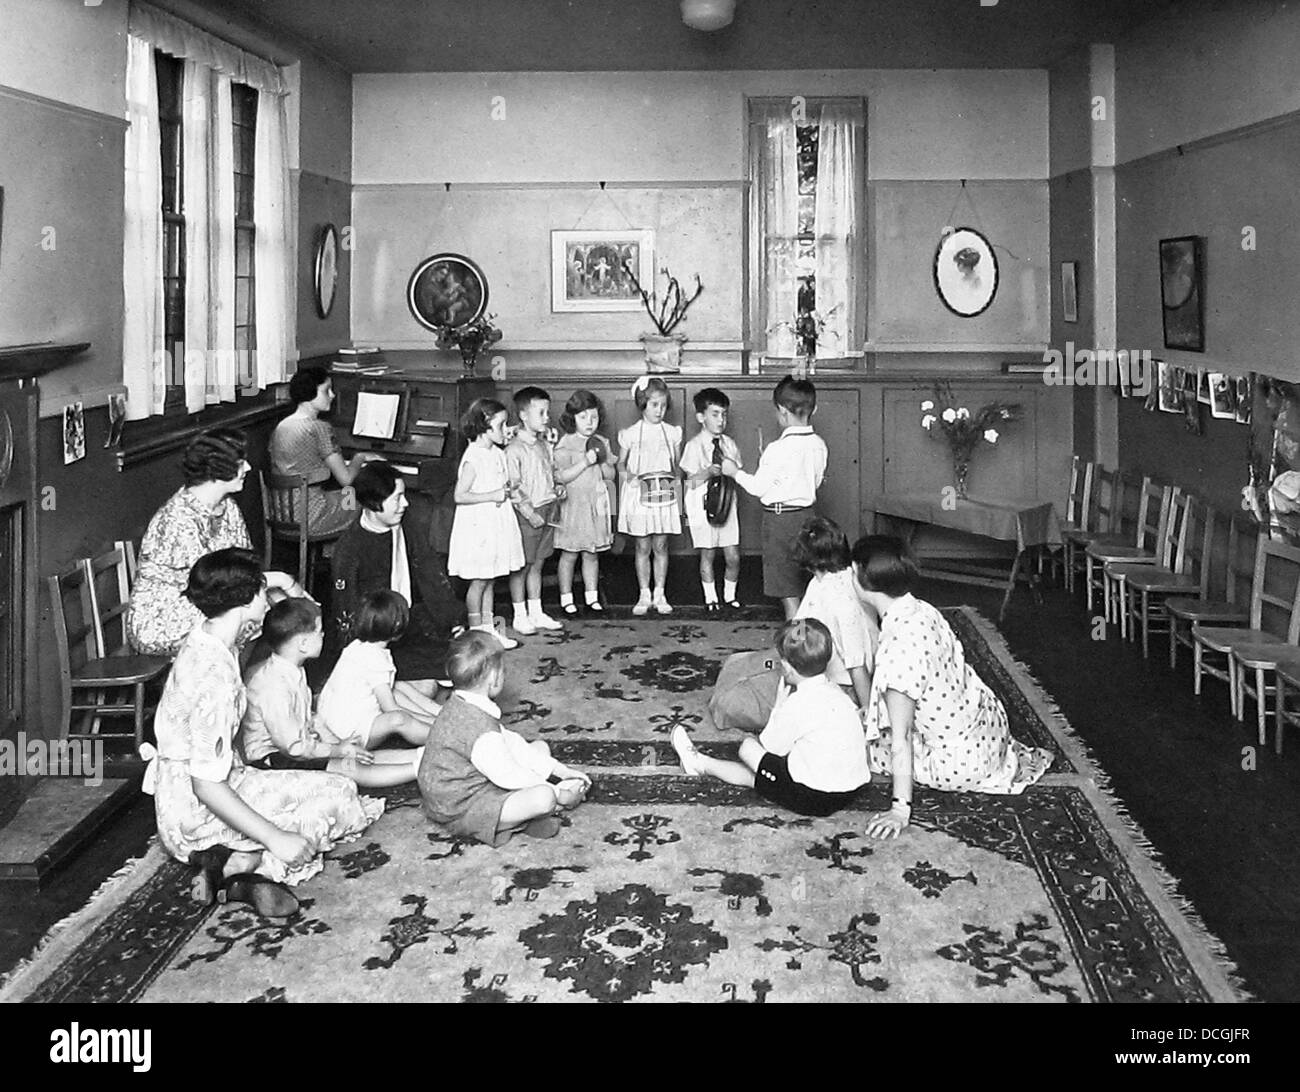 Sunday School in the 1940s - Stock Image